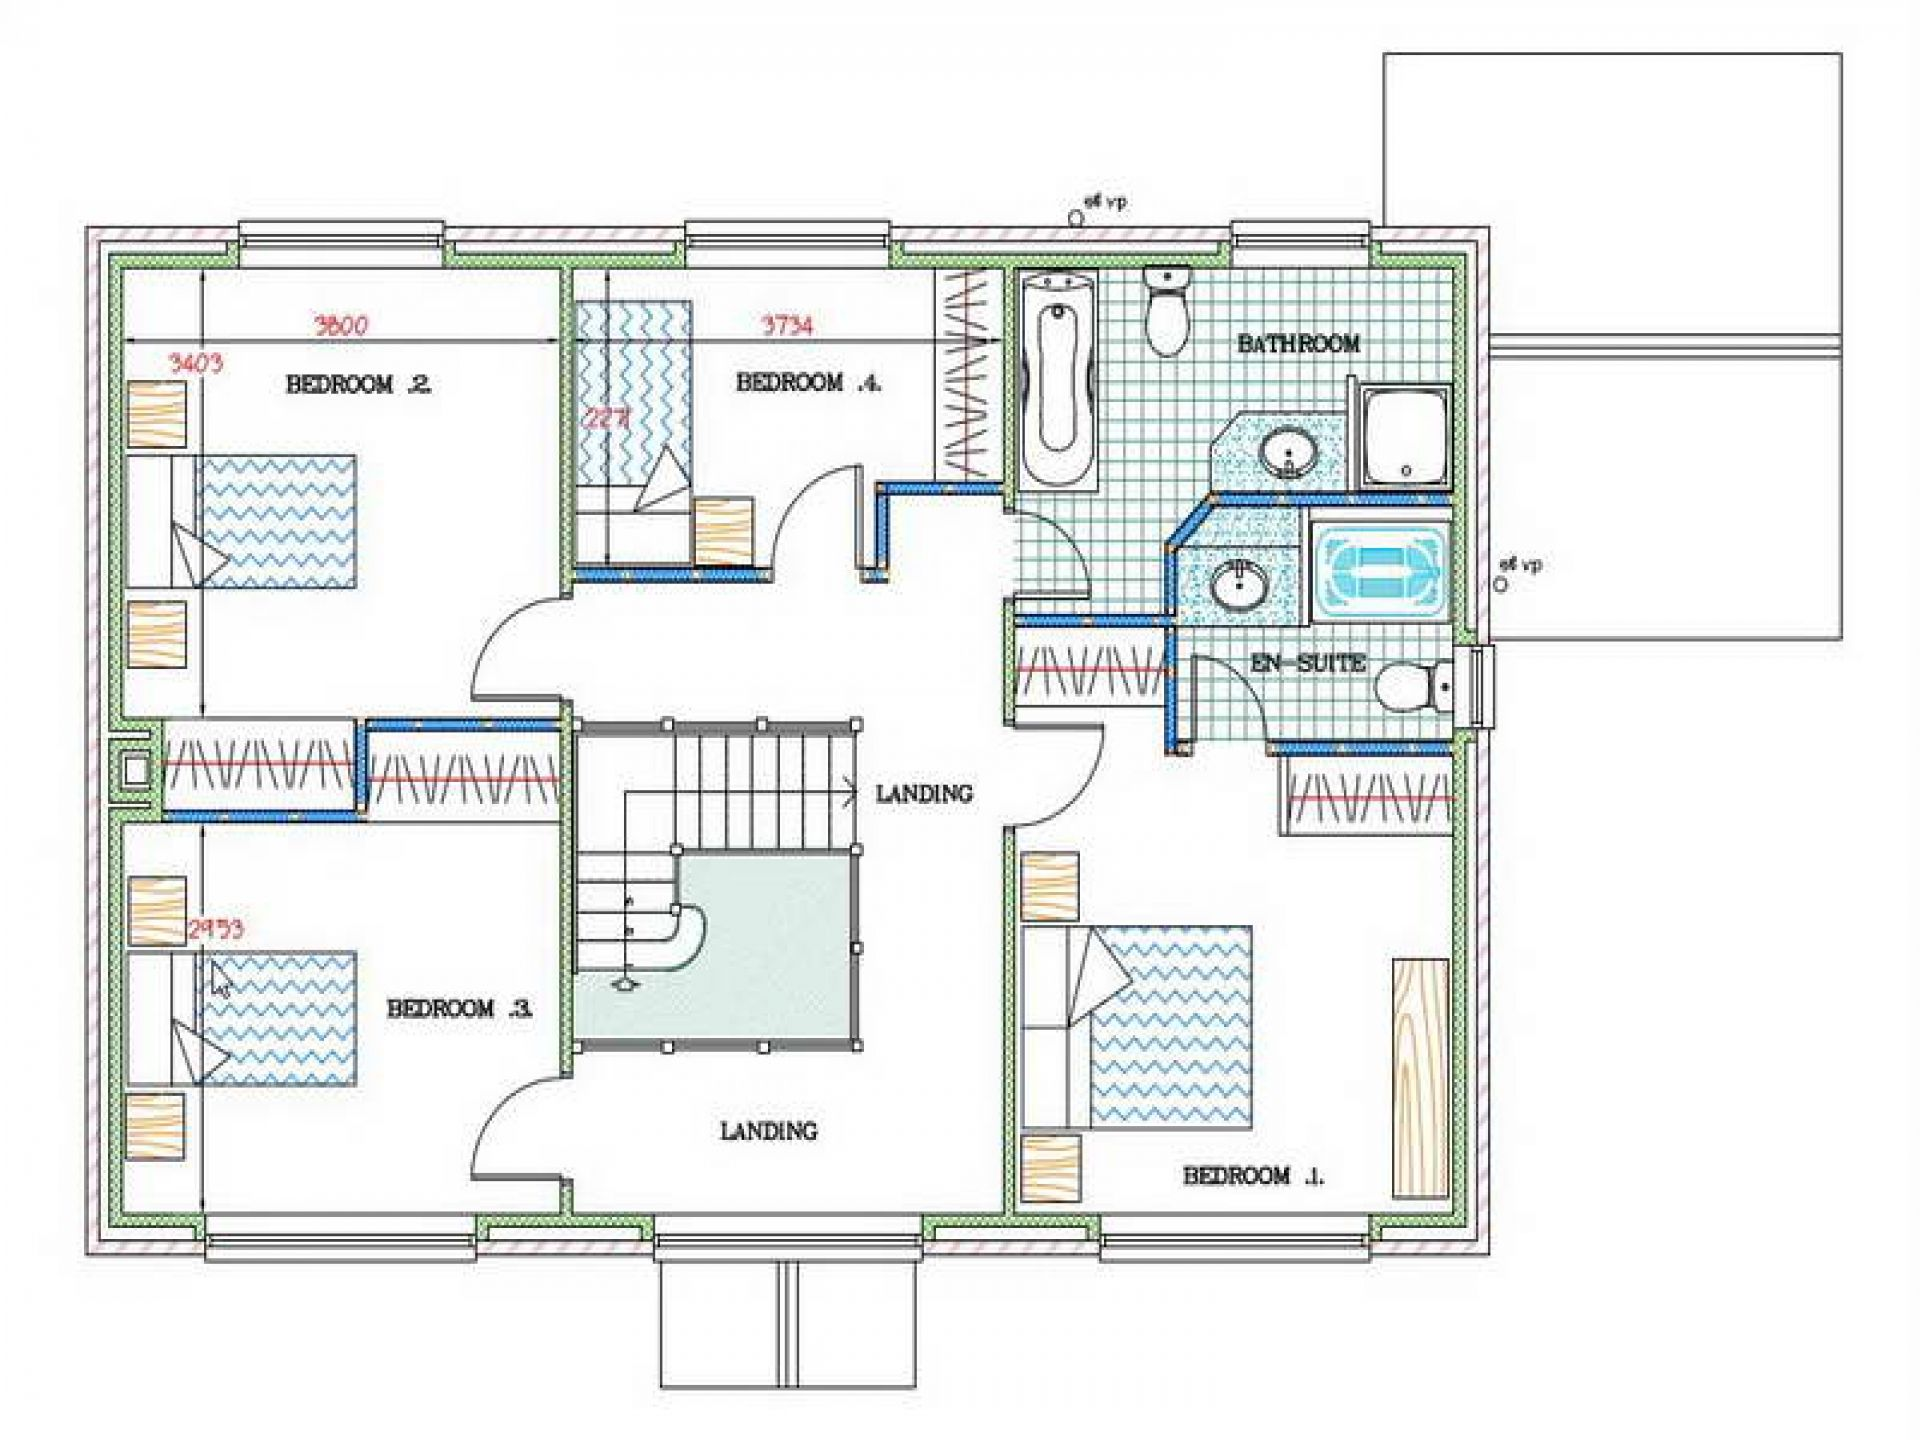 Home Plan Design Online Plans Mesmerizing Afbeeldingsresultaat Voor Illustrator Floor Plan Furniture . Design Inspiration